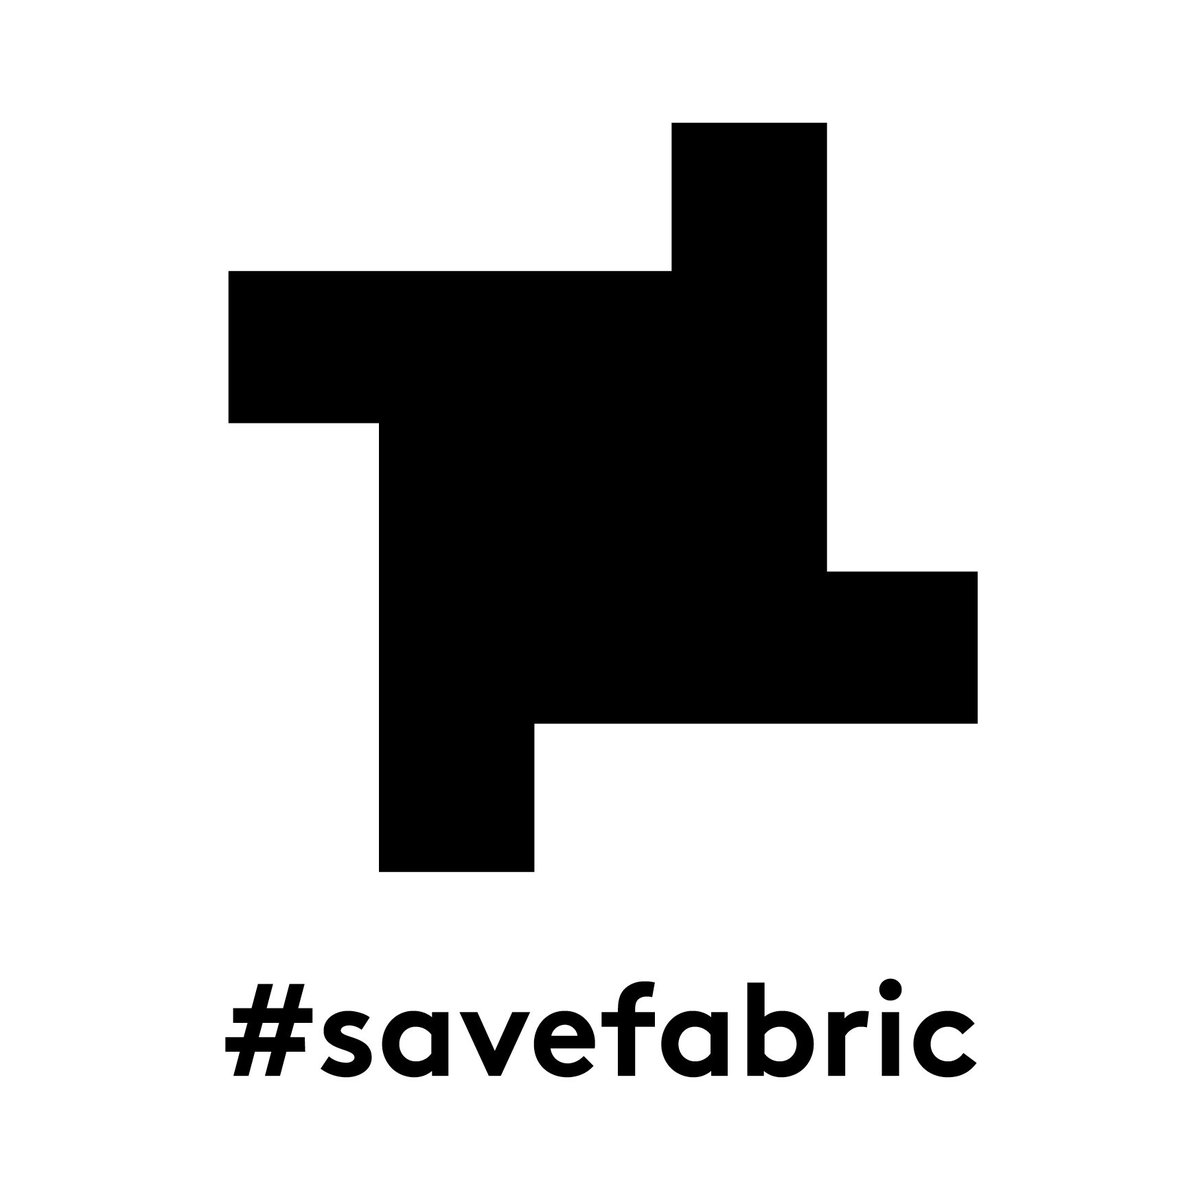 I have signed the petition to save @fabriclondon have you? #savefabric https://t.co/SKmtHC5ZRp